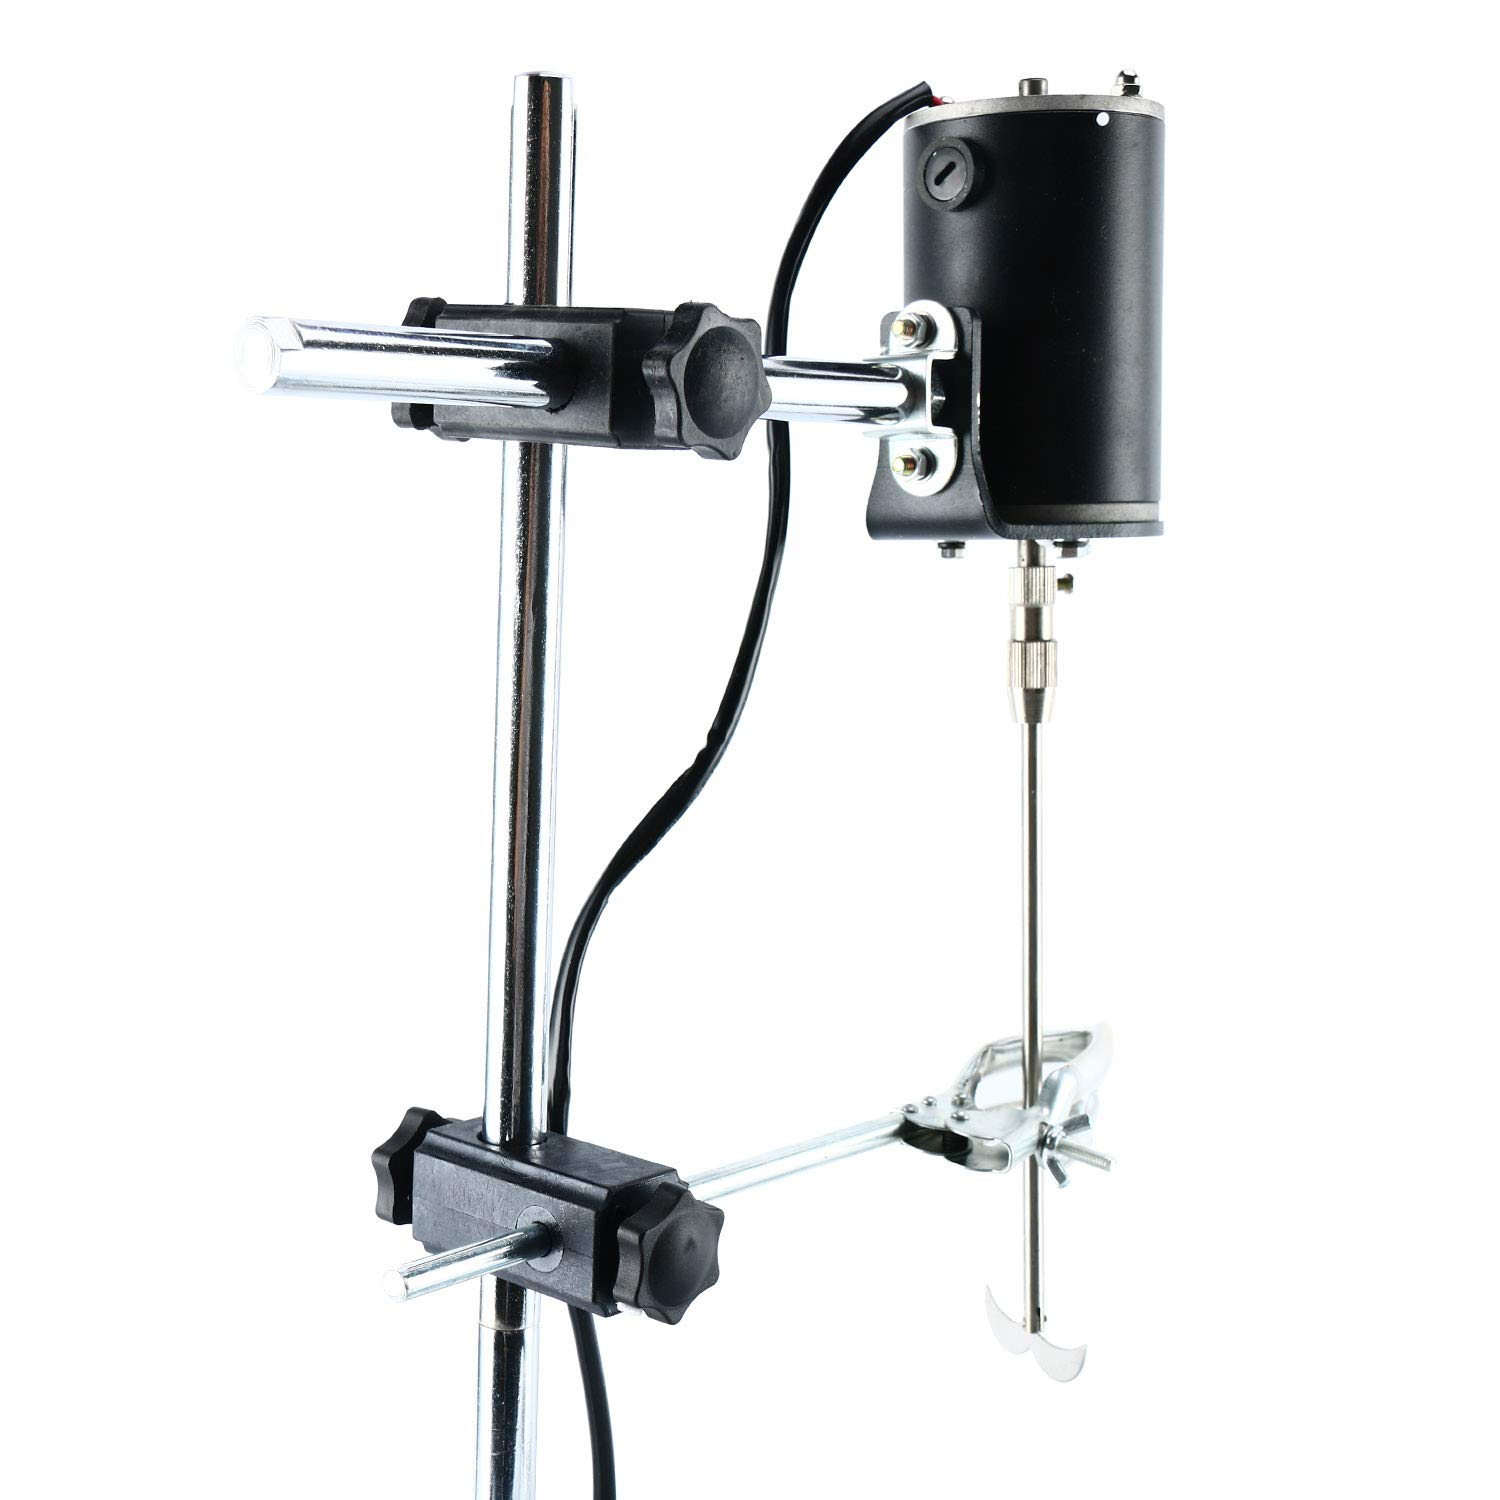 YaeCCC Electric Overhead Stirrer Mixer 0-2000 Revolutions Per Minute Overhead Stirrer Mixer 100W Overhead Stirrer 0-120 Minutes for Lab Mechanical Mixer by YaeCCC (Image #6)